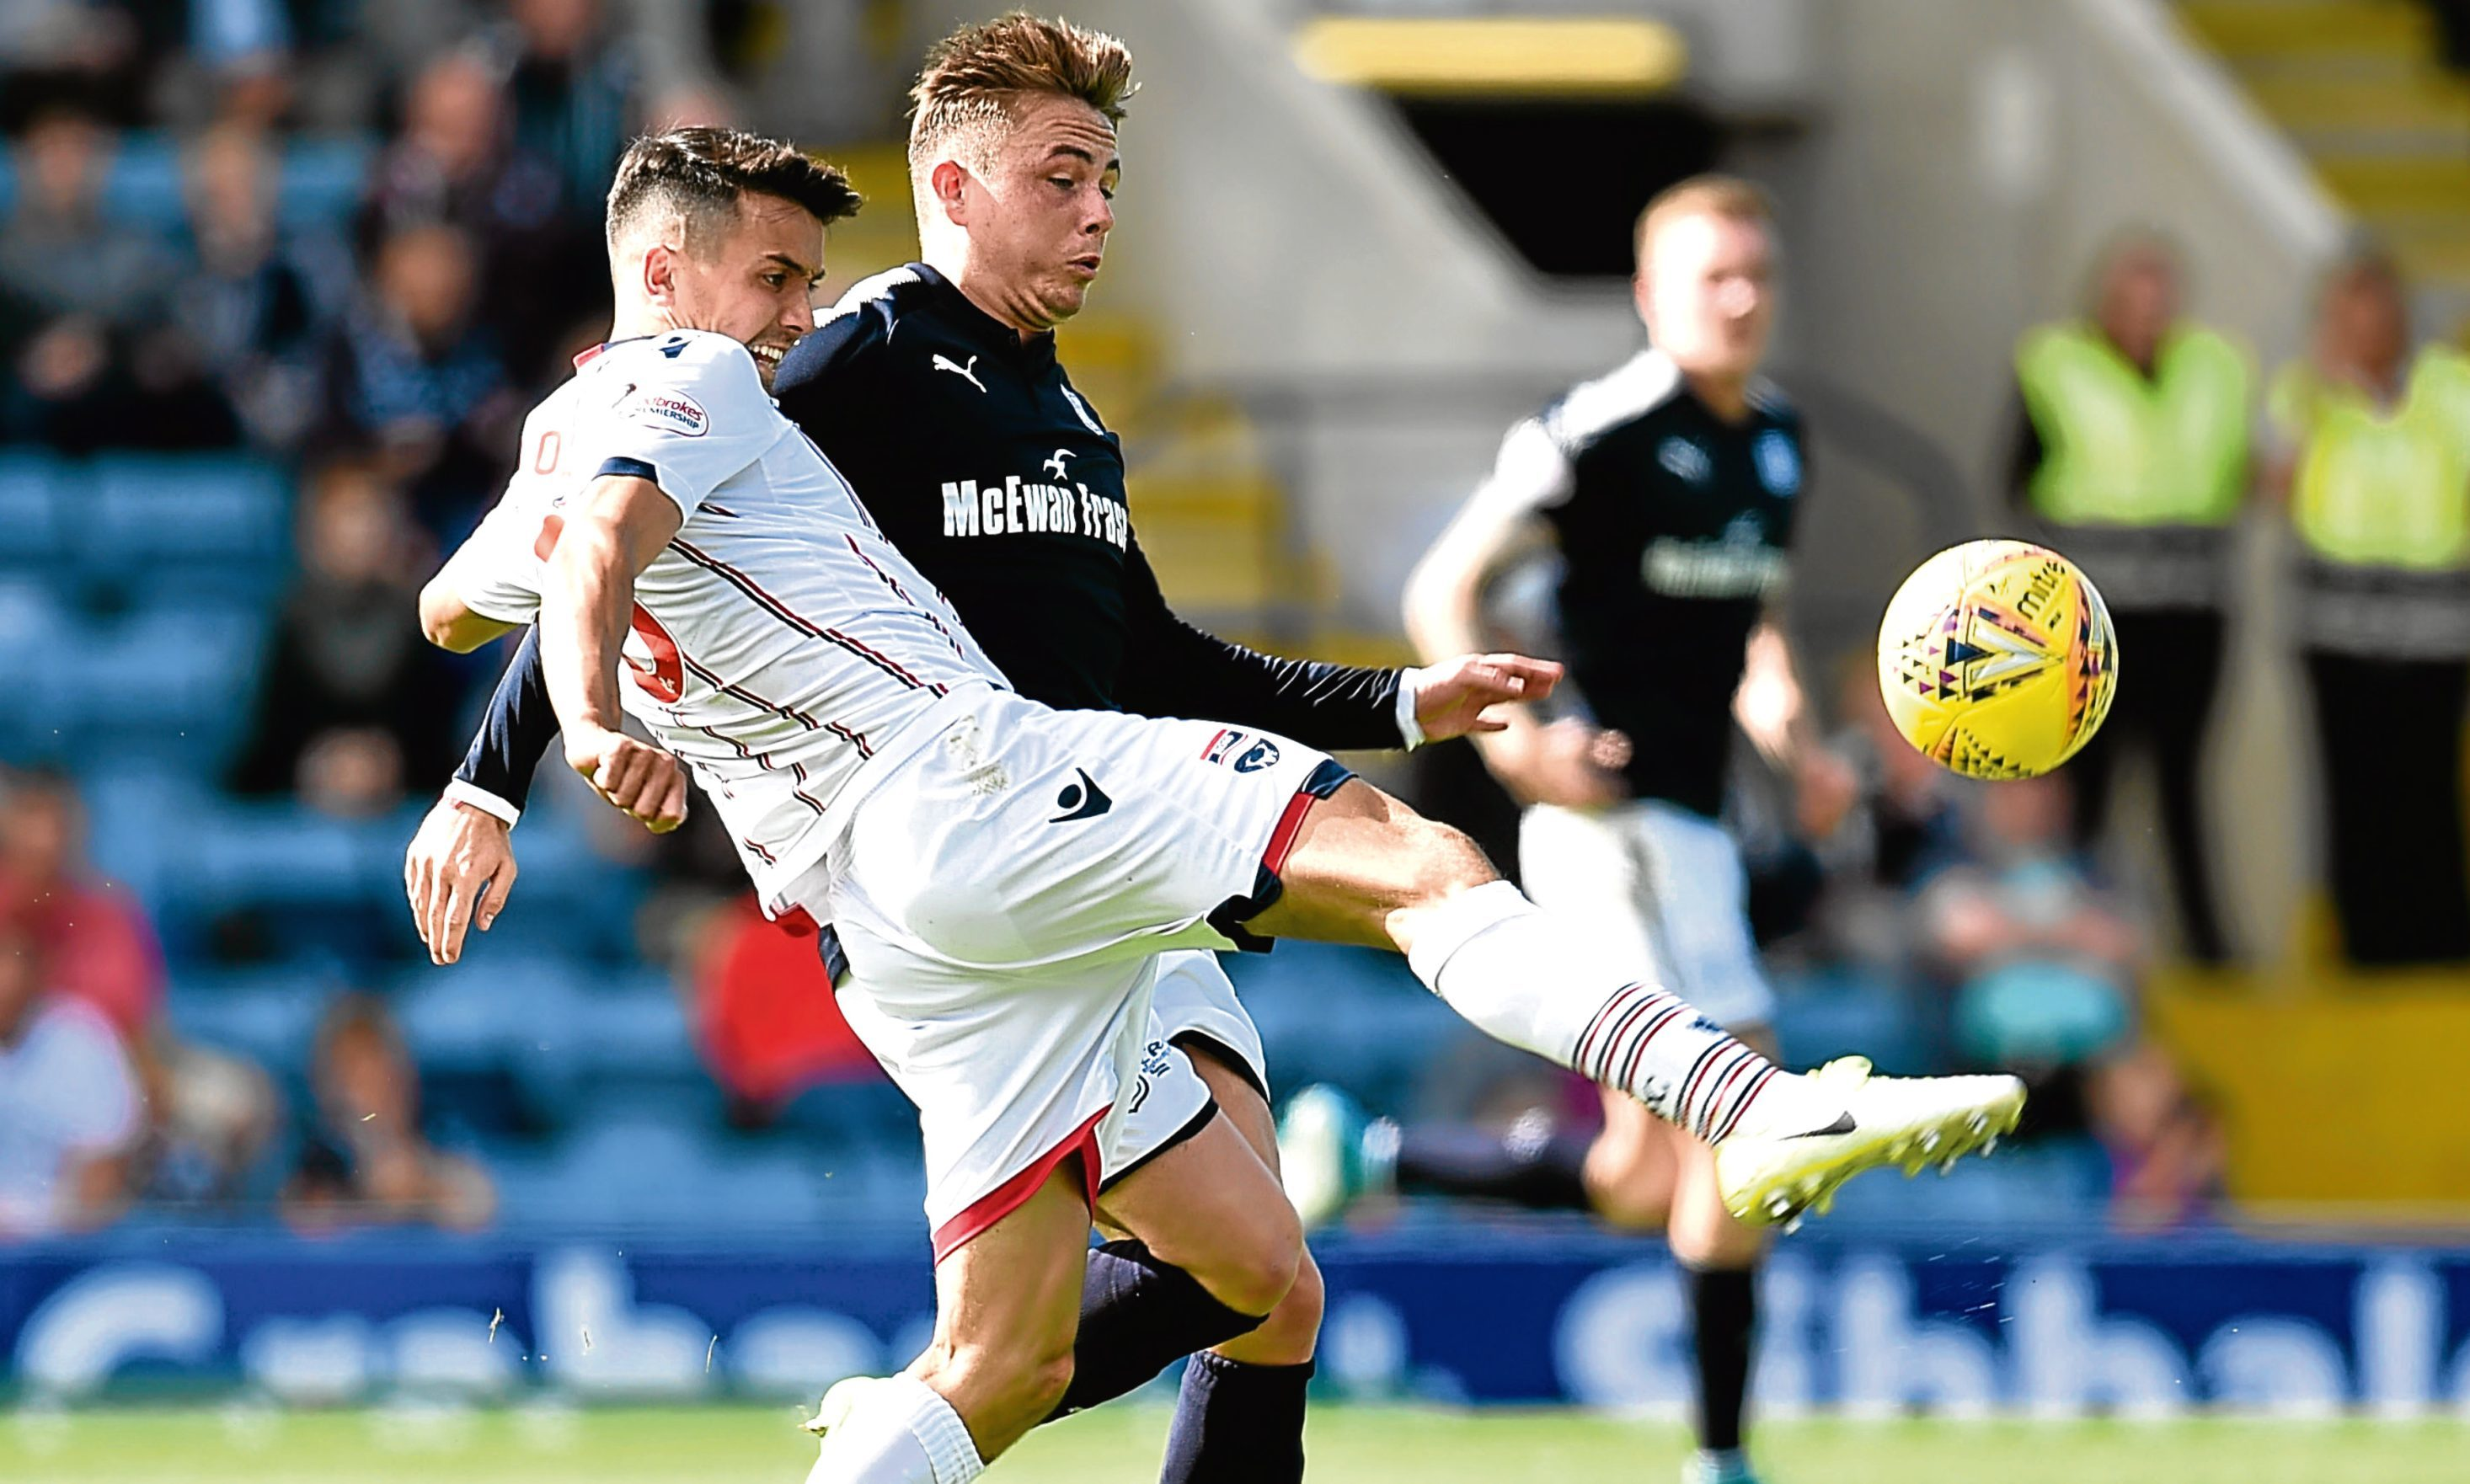 Ross County's Tim Chow (left) battles for the ball with Dundee's Scott Allan when the two sides met on the opening day